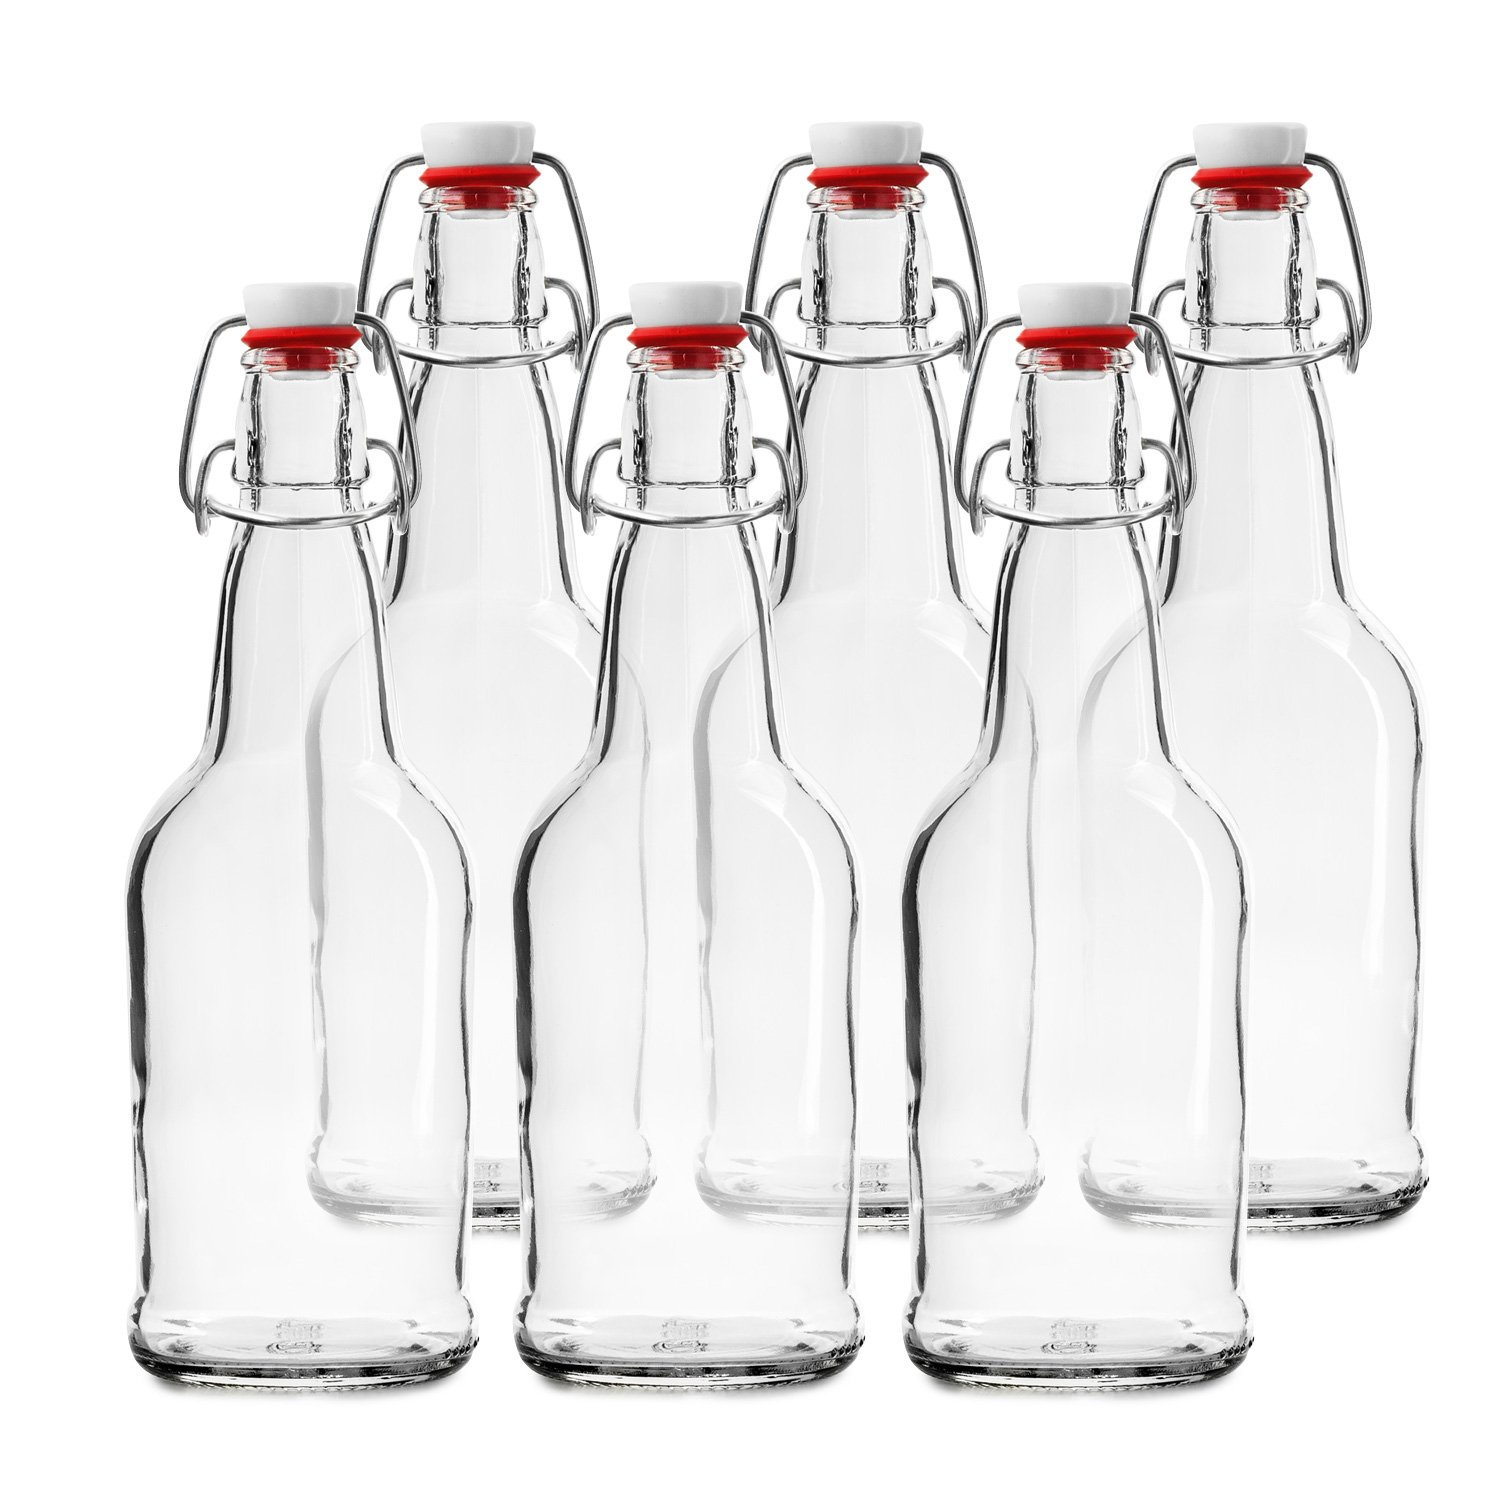 Chefs Star CASE OF 6-16 oz. EASY CAP Beer Bottles - CLEAR Chef's Star